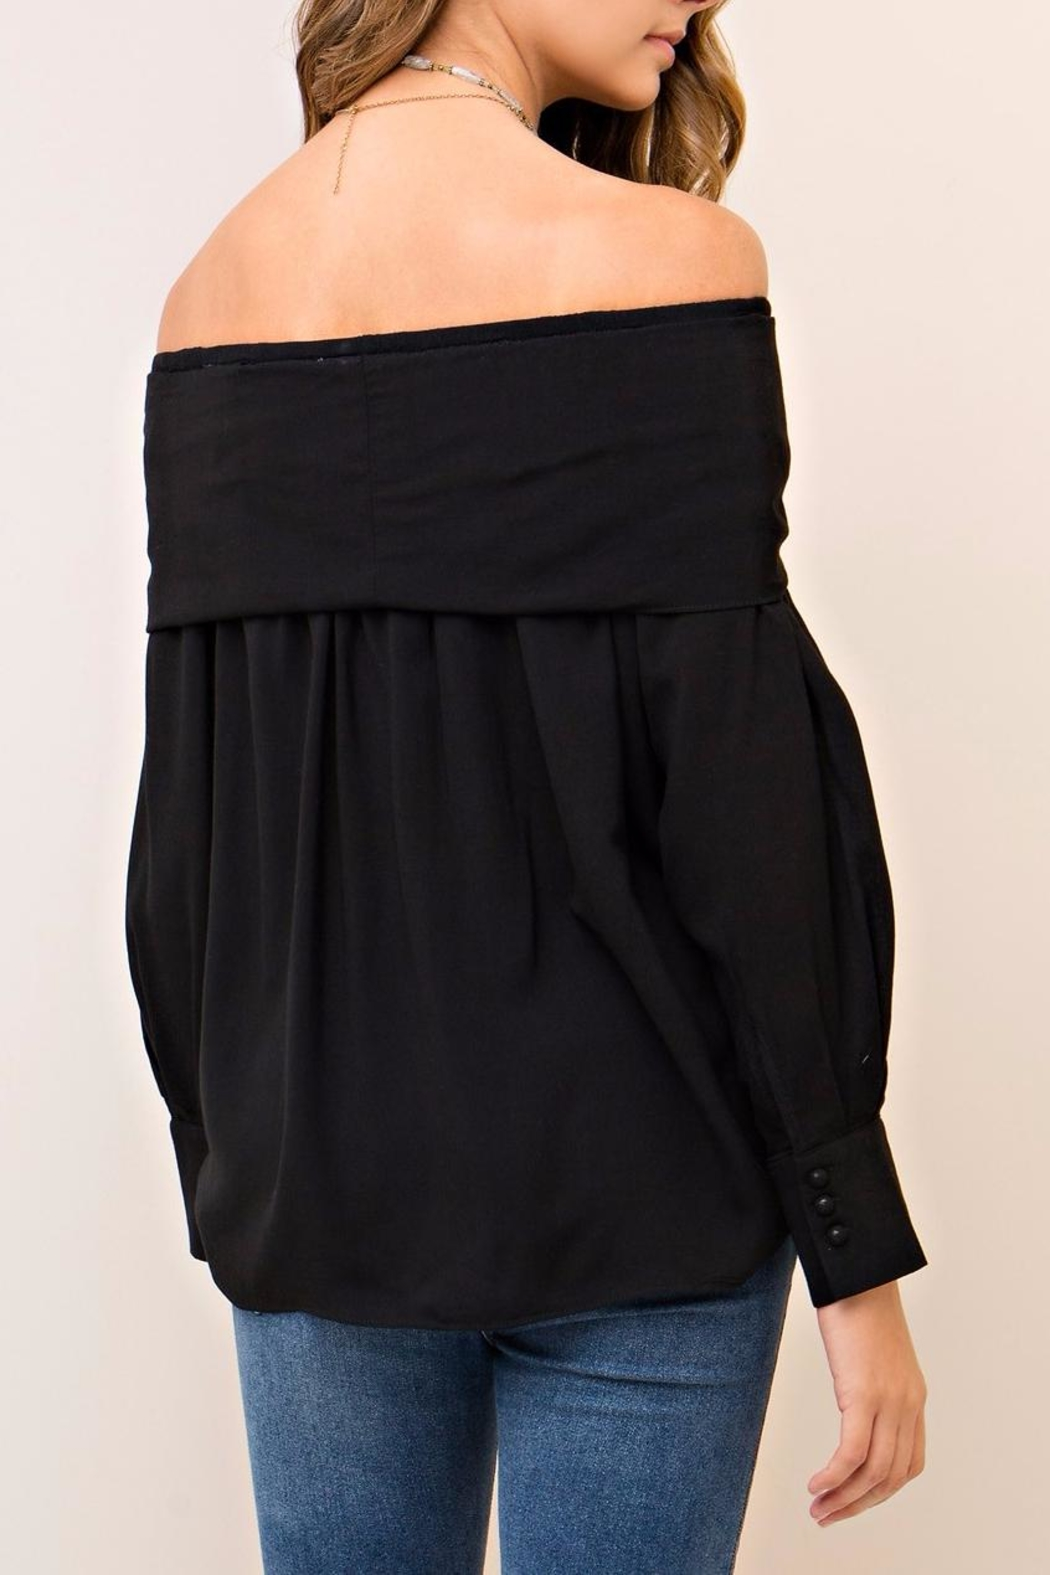 People Outfitter Aston Black Top - Side Cropped Image